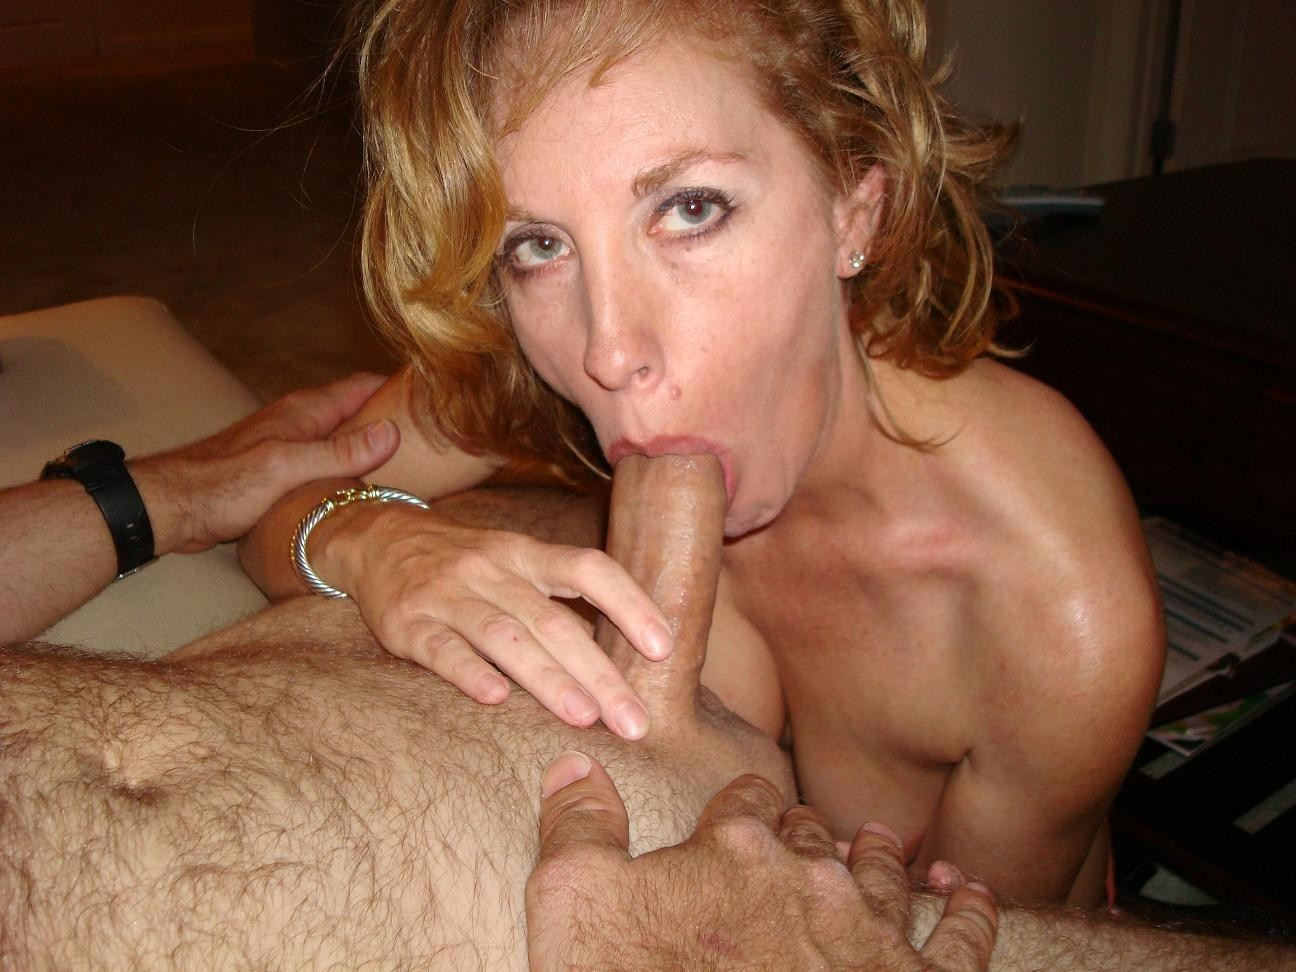 ladies-giving-blowjobs-biggest-anal-fuck